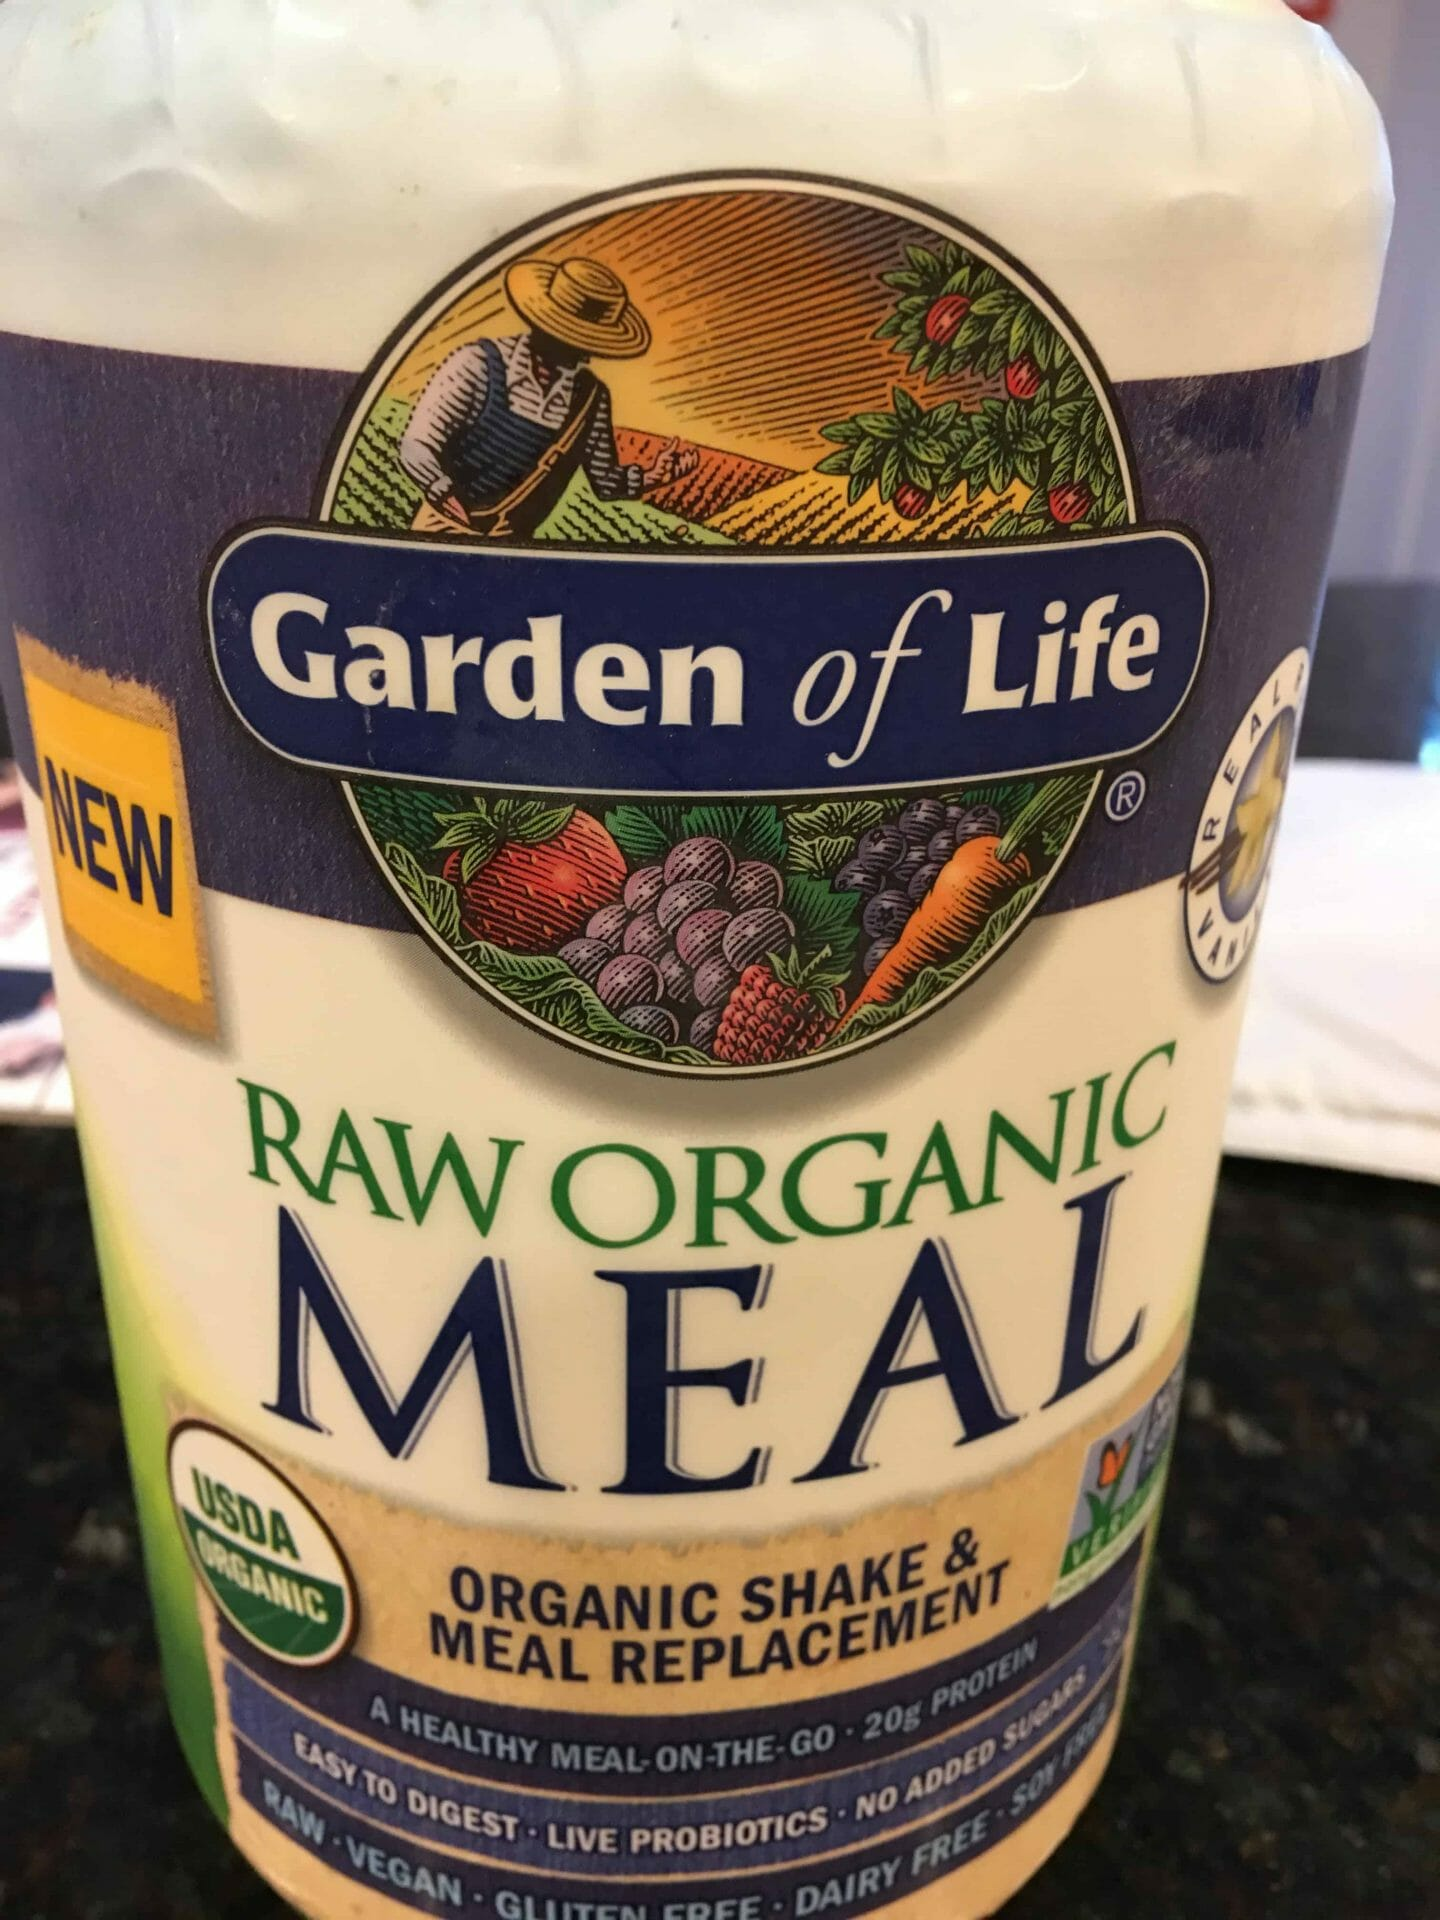 Garden Of Life Raw Organic Meal Replacement Review